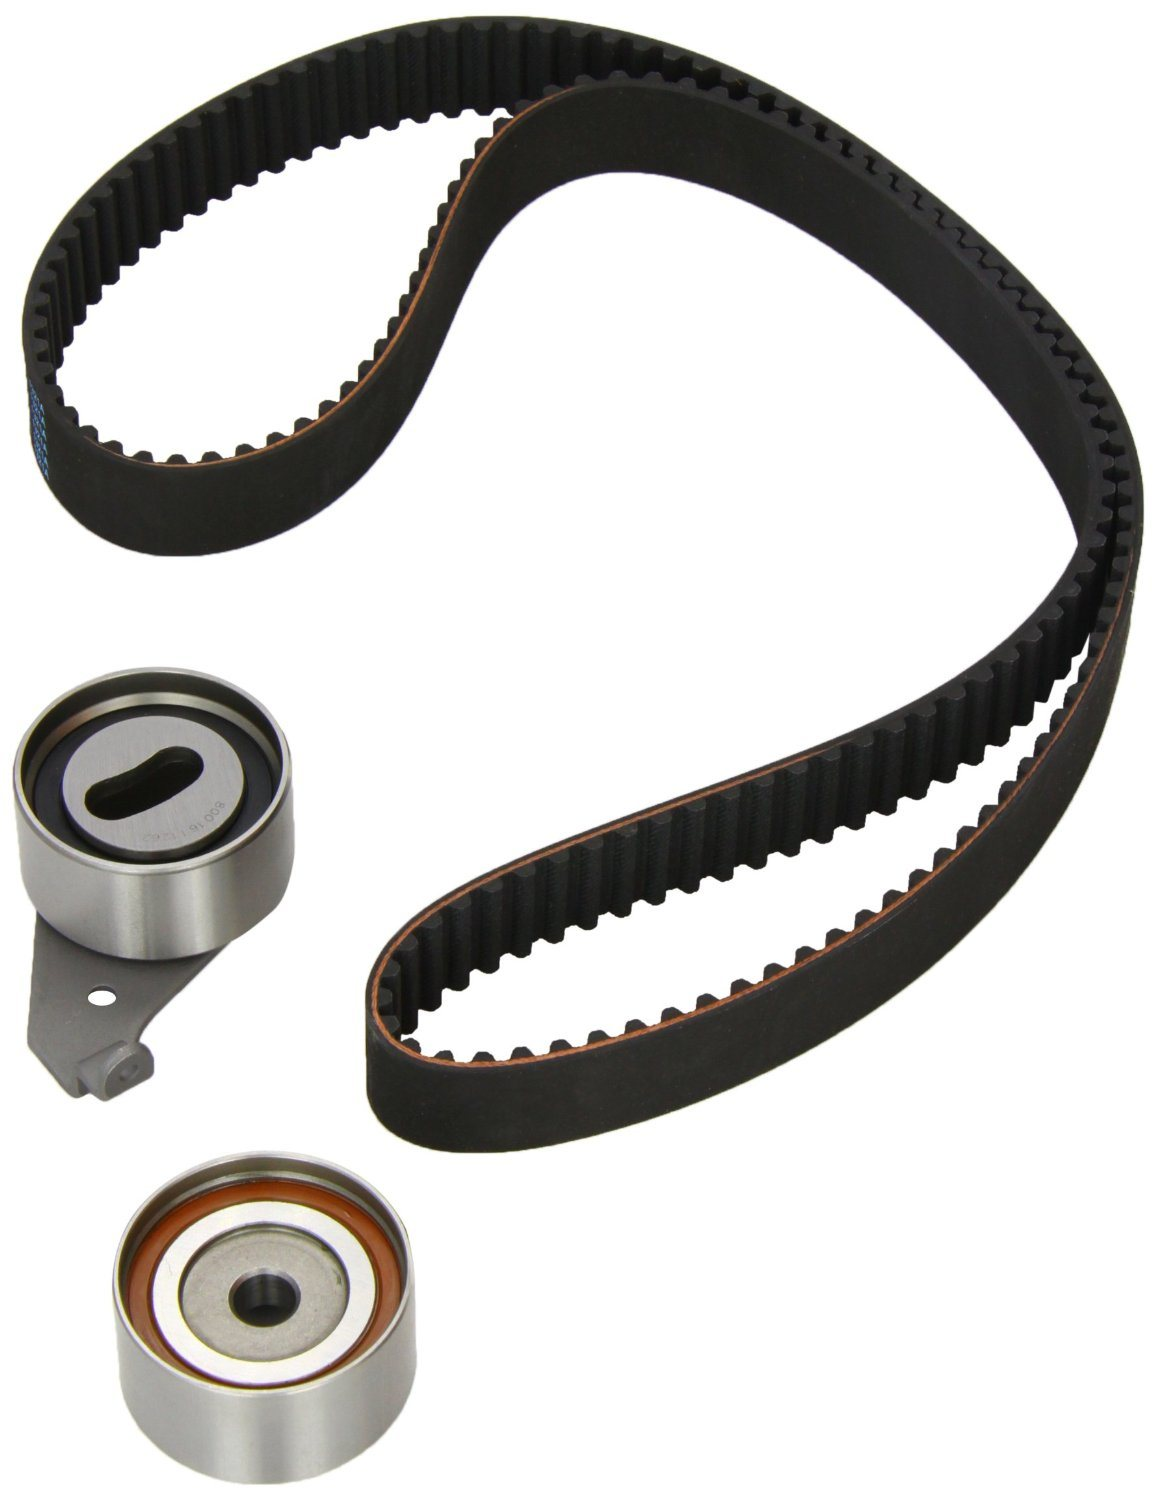 hight resolution of china timing belt kit 530026810 for holden toyota vkma91003 china timing chain kits timing belt kis